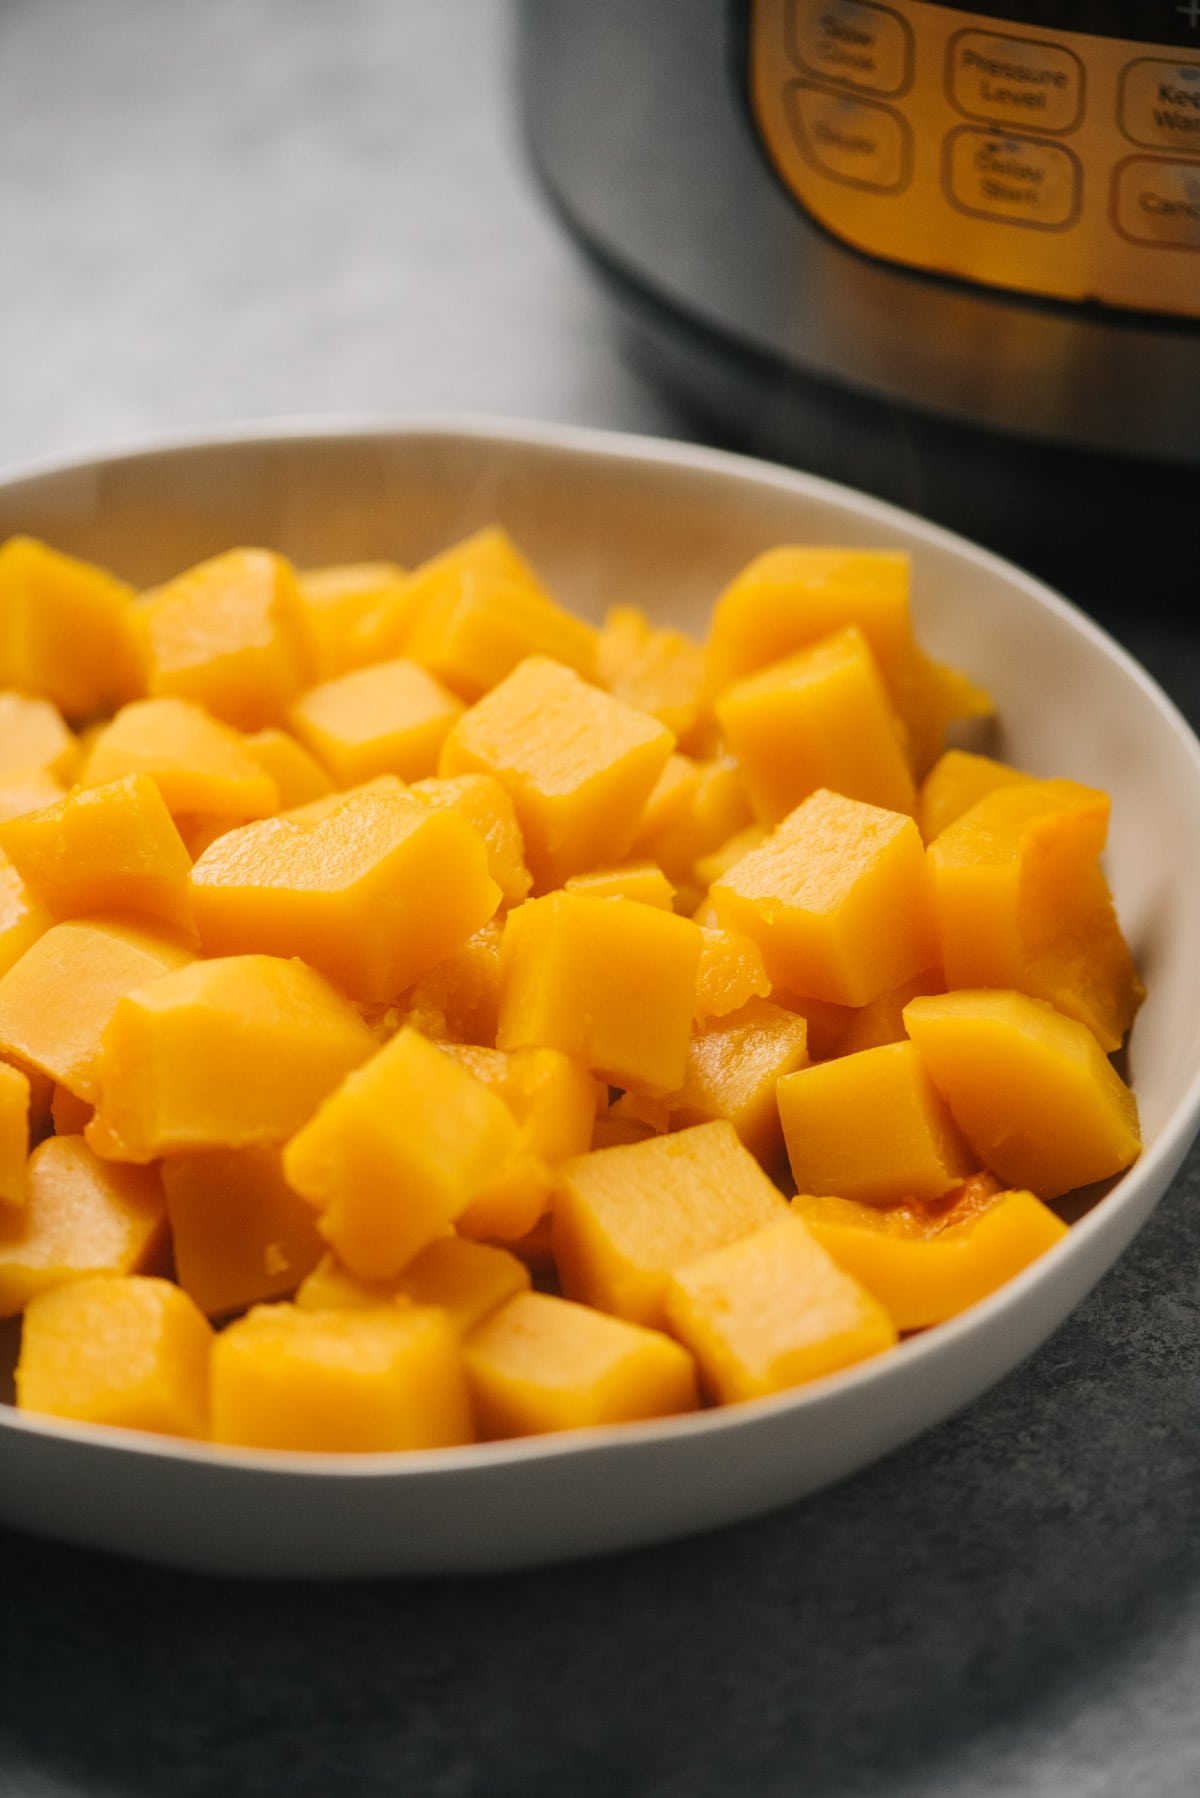 Side view, butternut squash cubes in a tan serving bowl in front of an Instant Pot.